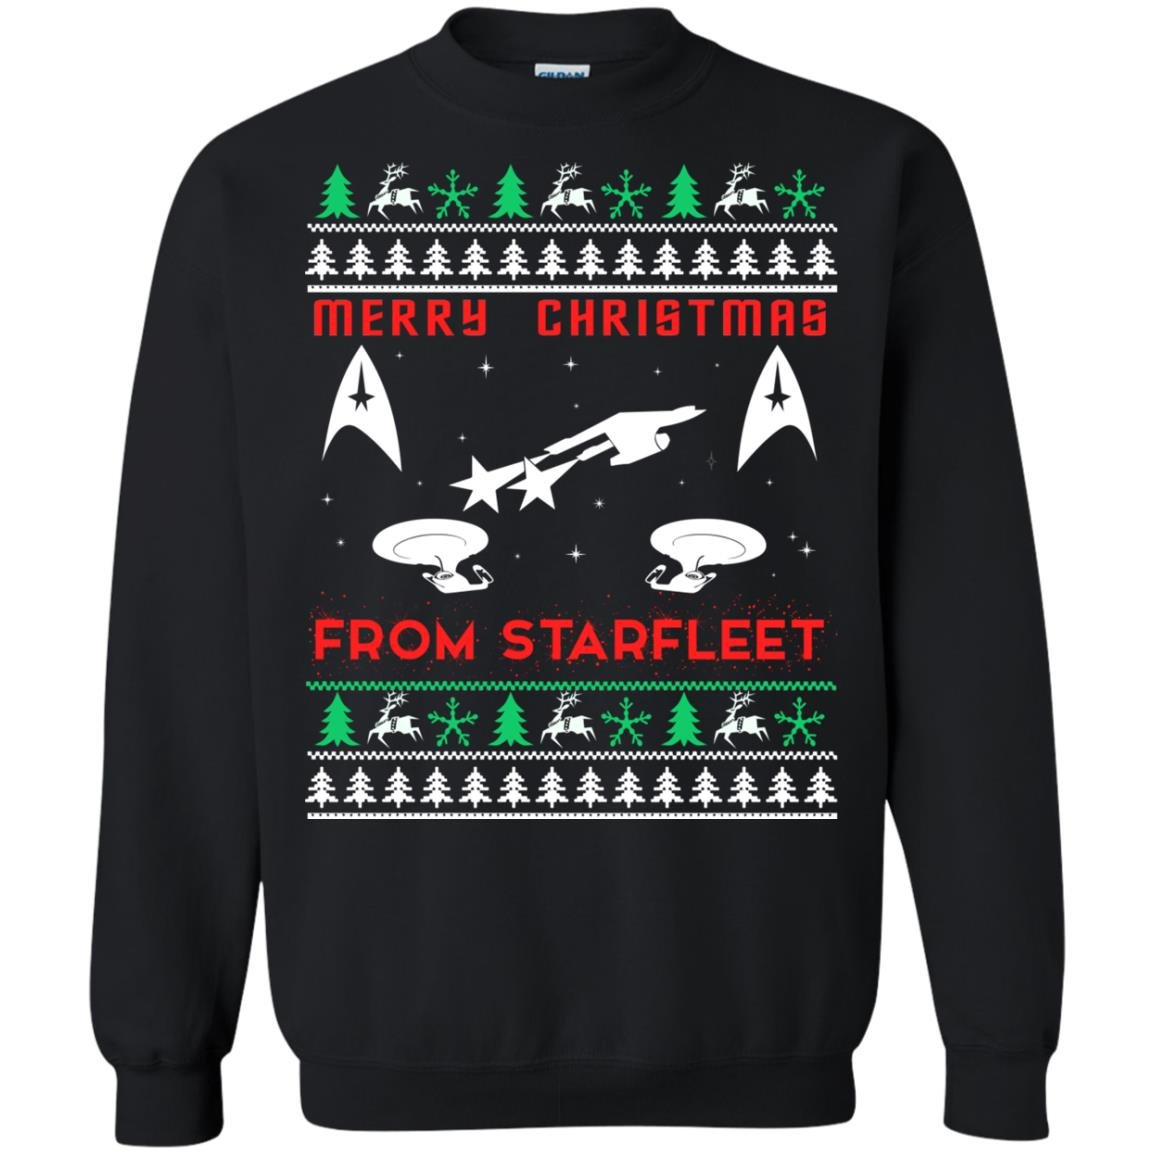 image 2449 - Star Trek: Merry Christmas From Starfleet Ugly Sweater, Christmas Sweater